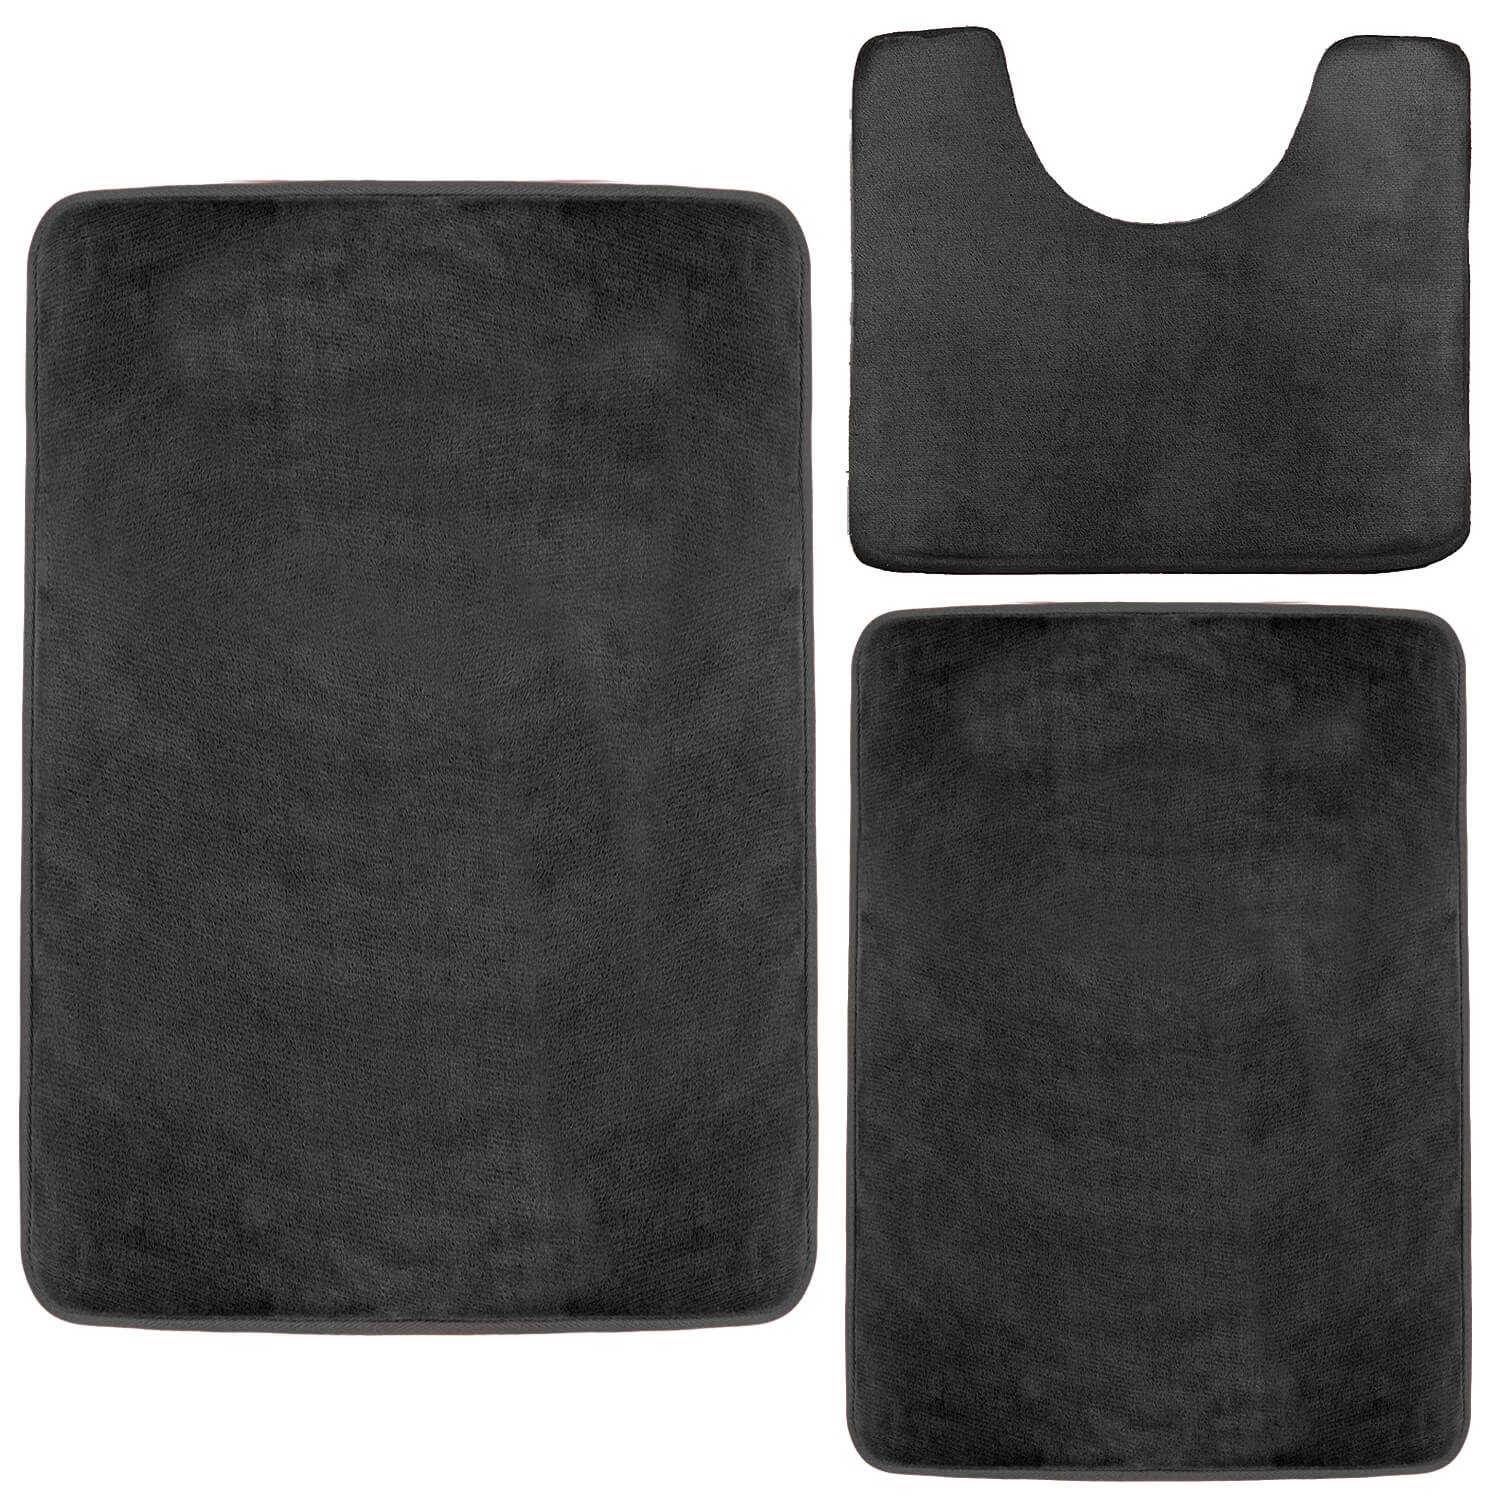 Clara Clark Memory Foam Bath Mat, Ultra Soft Non Slip and Absorbent Bathroom Rug. - Black, Set of 3 - Small/Large/Contour